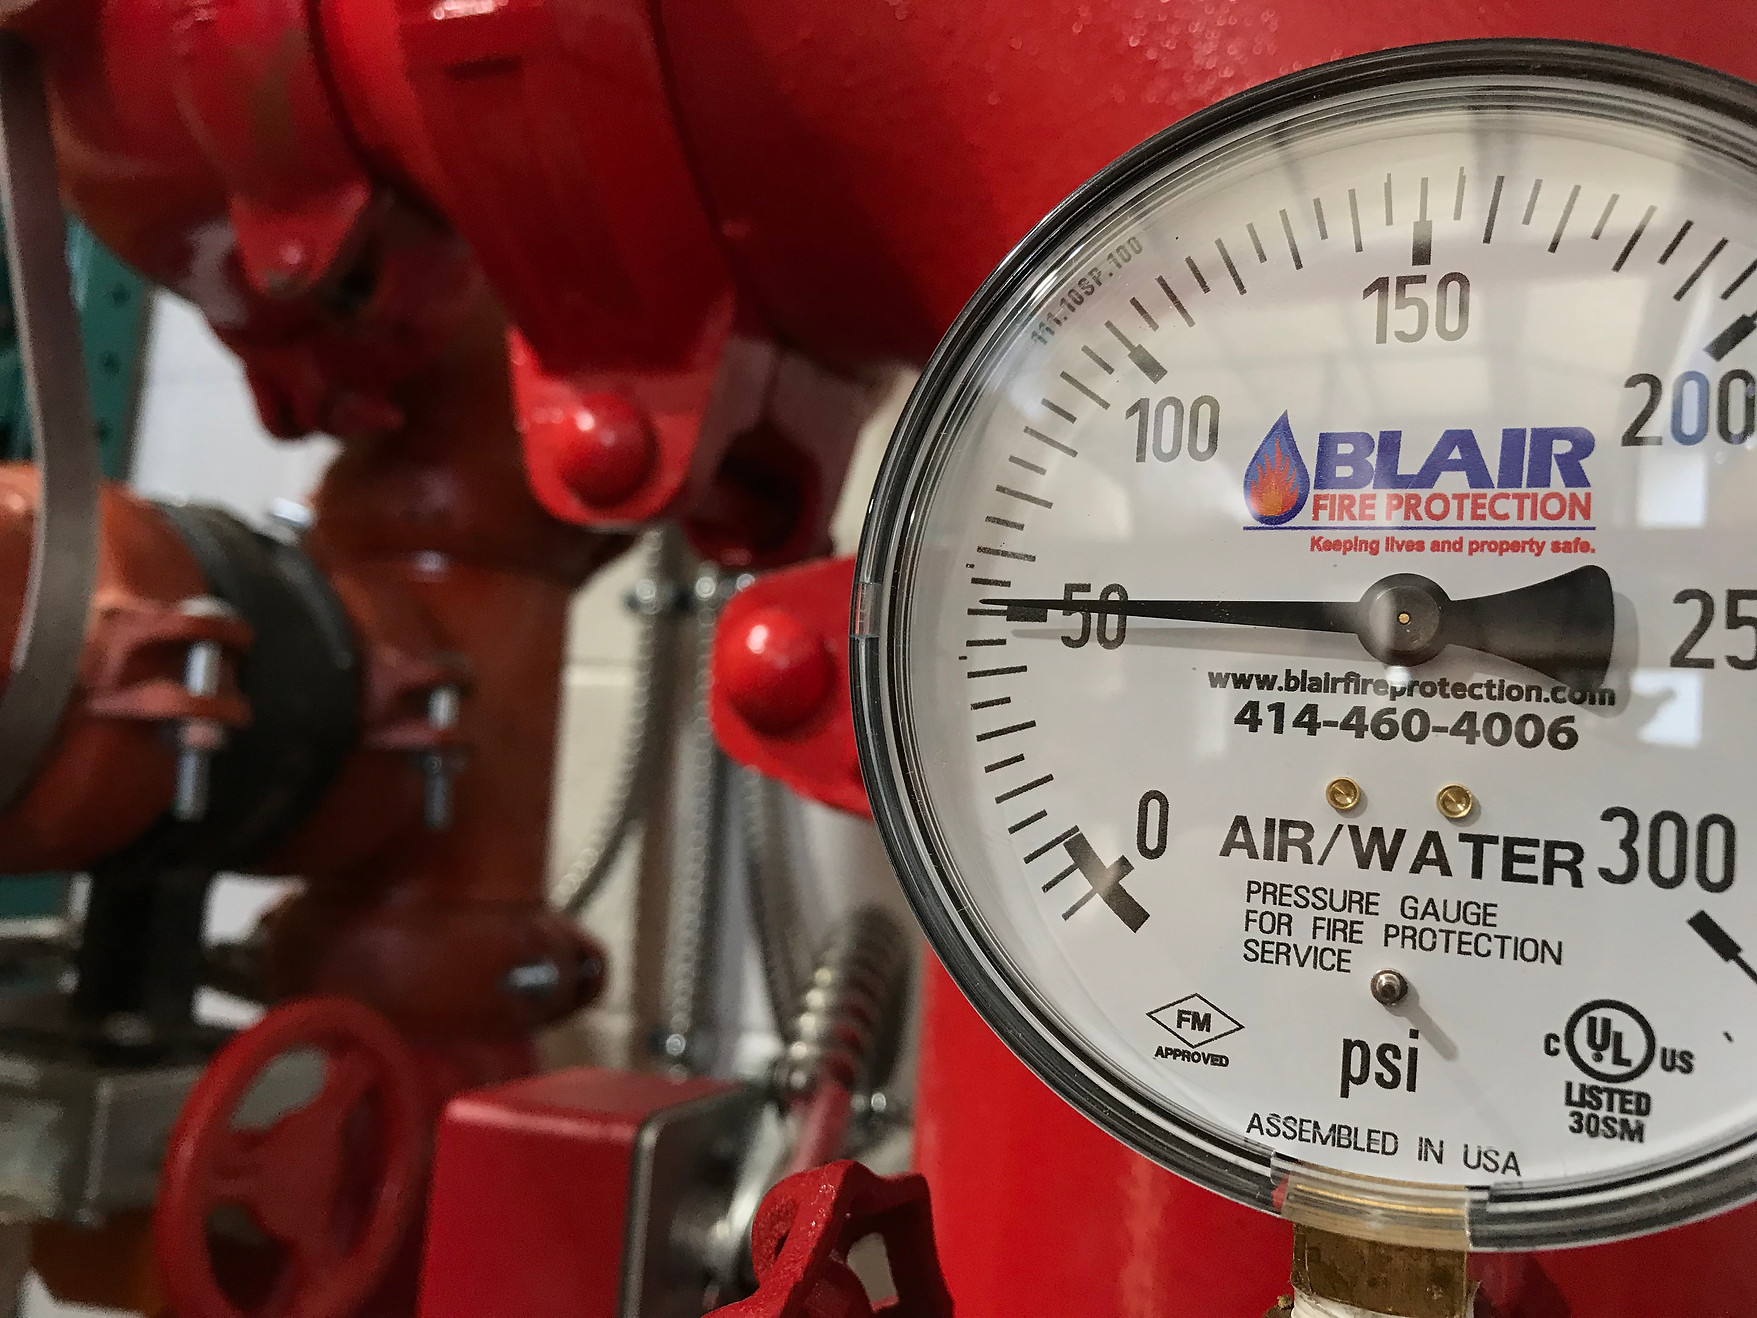 Blair Fire Protection Gauge